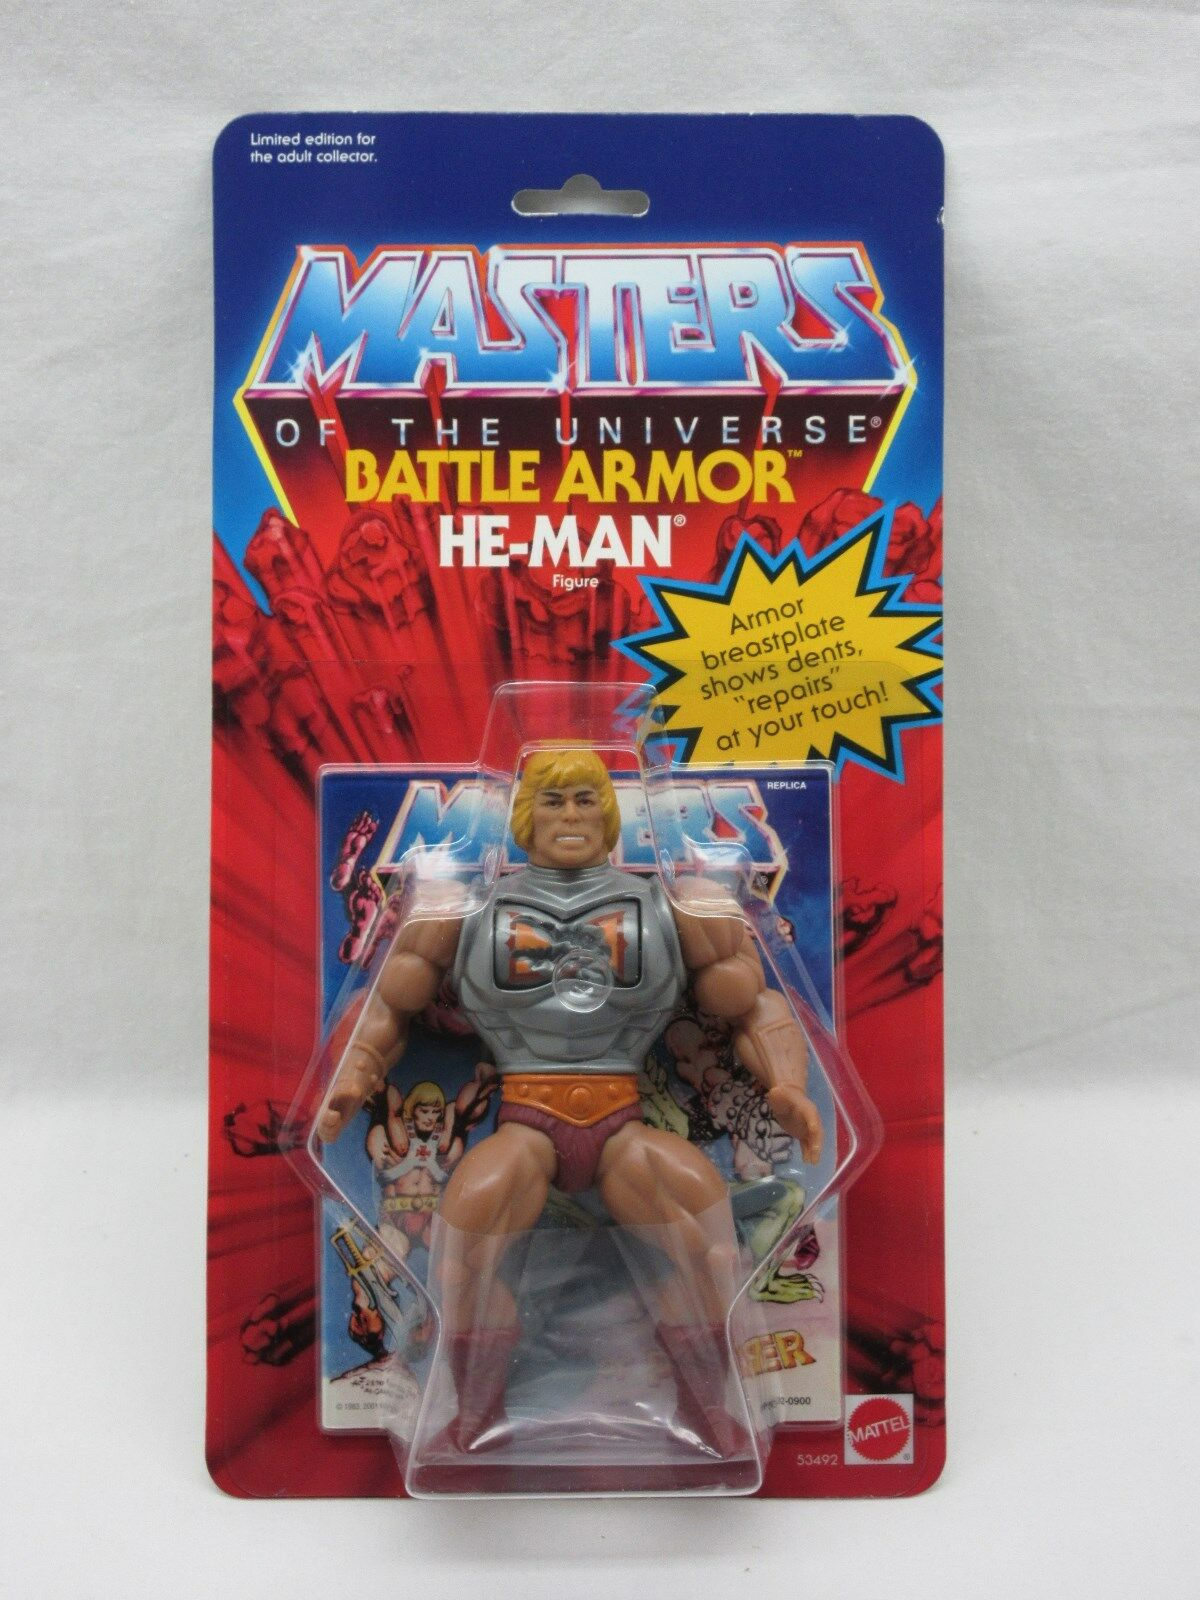 MOTU,Commemorative BATTLE ARMOR HE-MAN,MOC,MISB,Sealed,Masters of the Universe